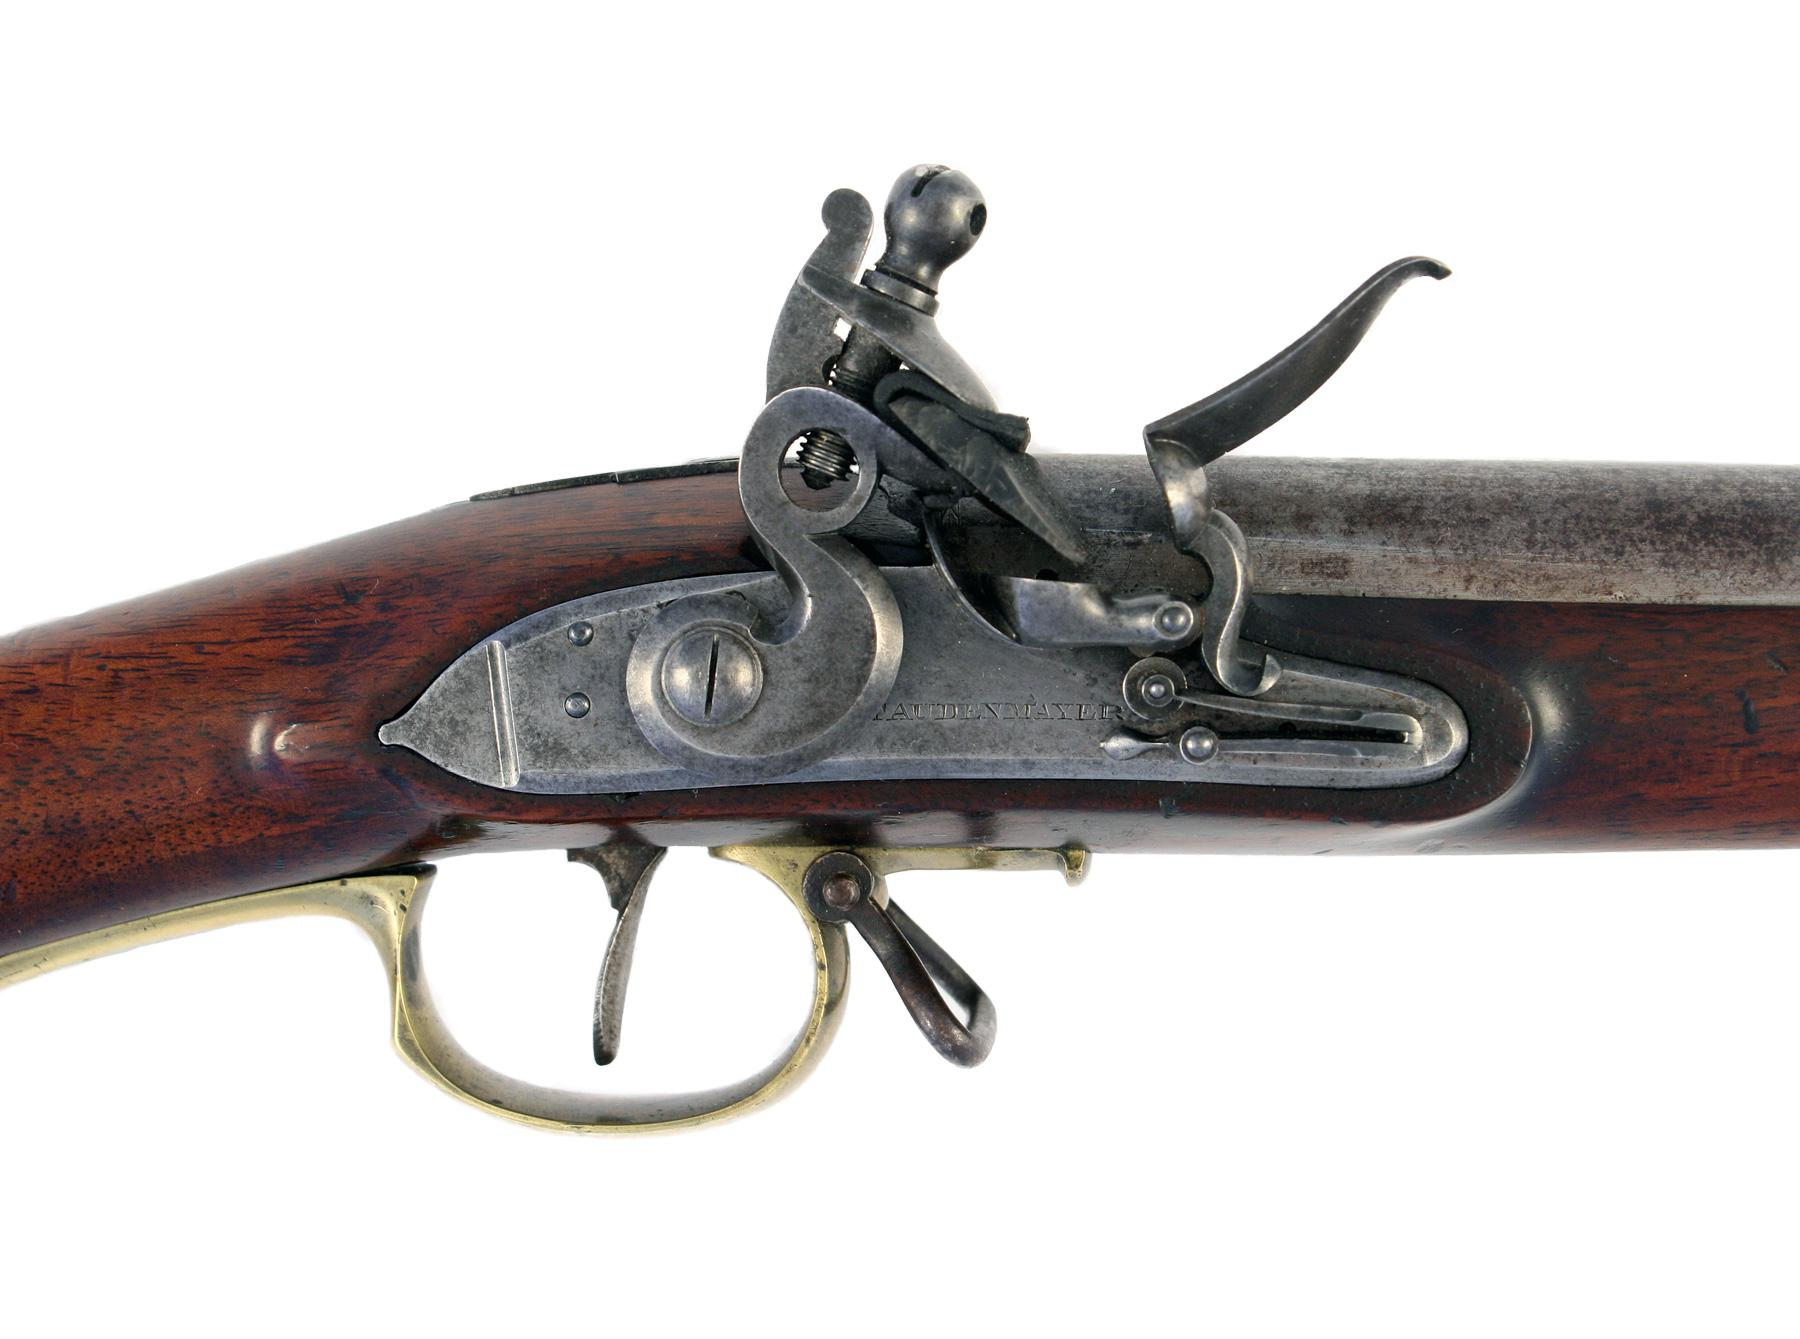 A Baker Rifle by Staudenmayer